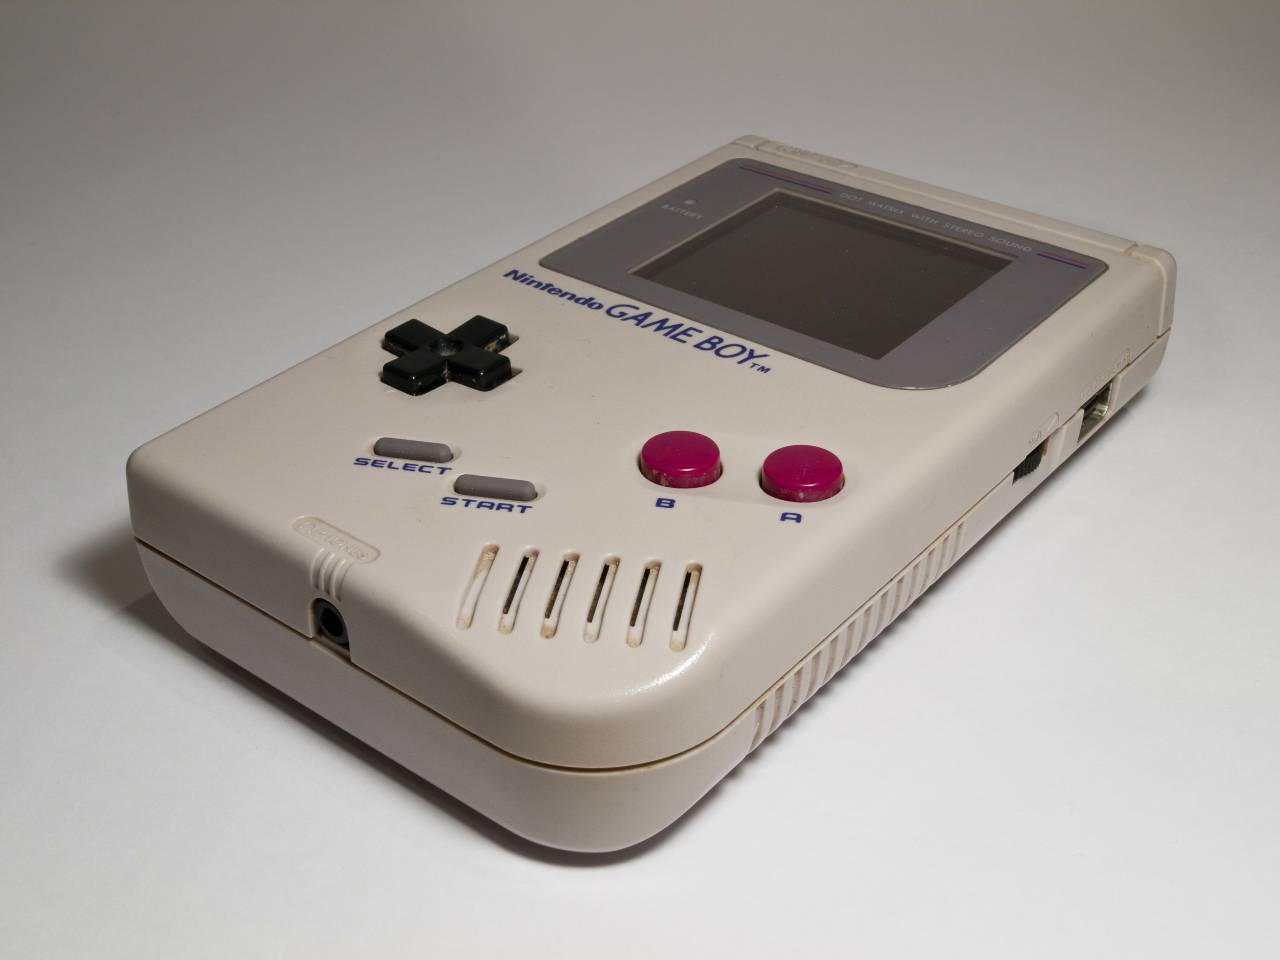 The Original Game Boy Turns 25 Today